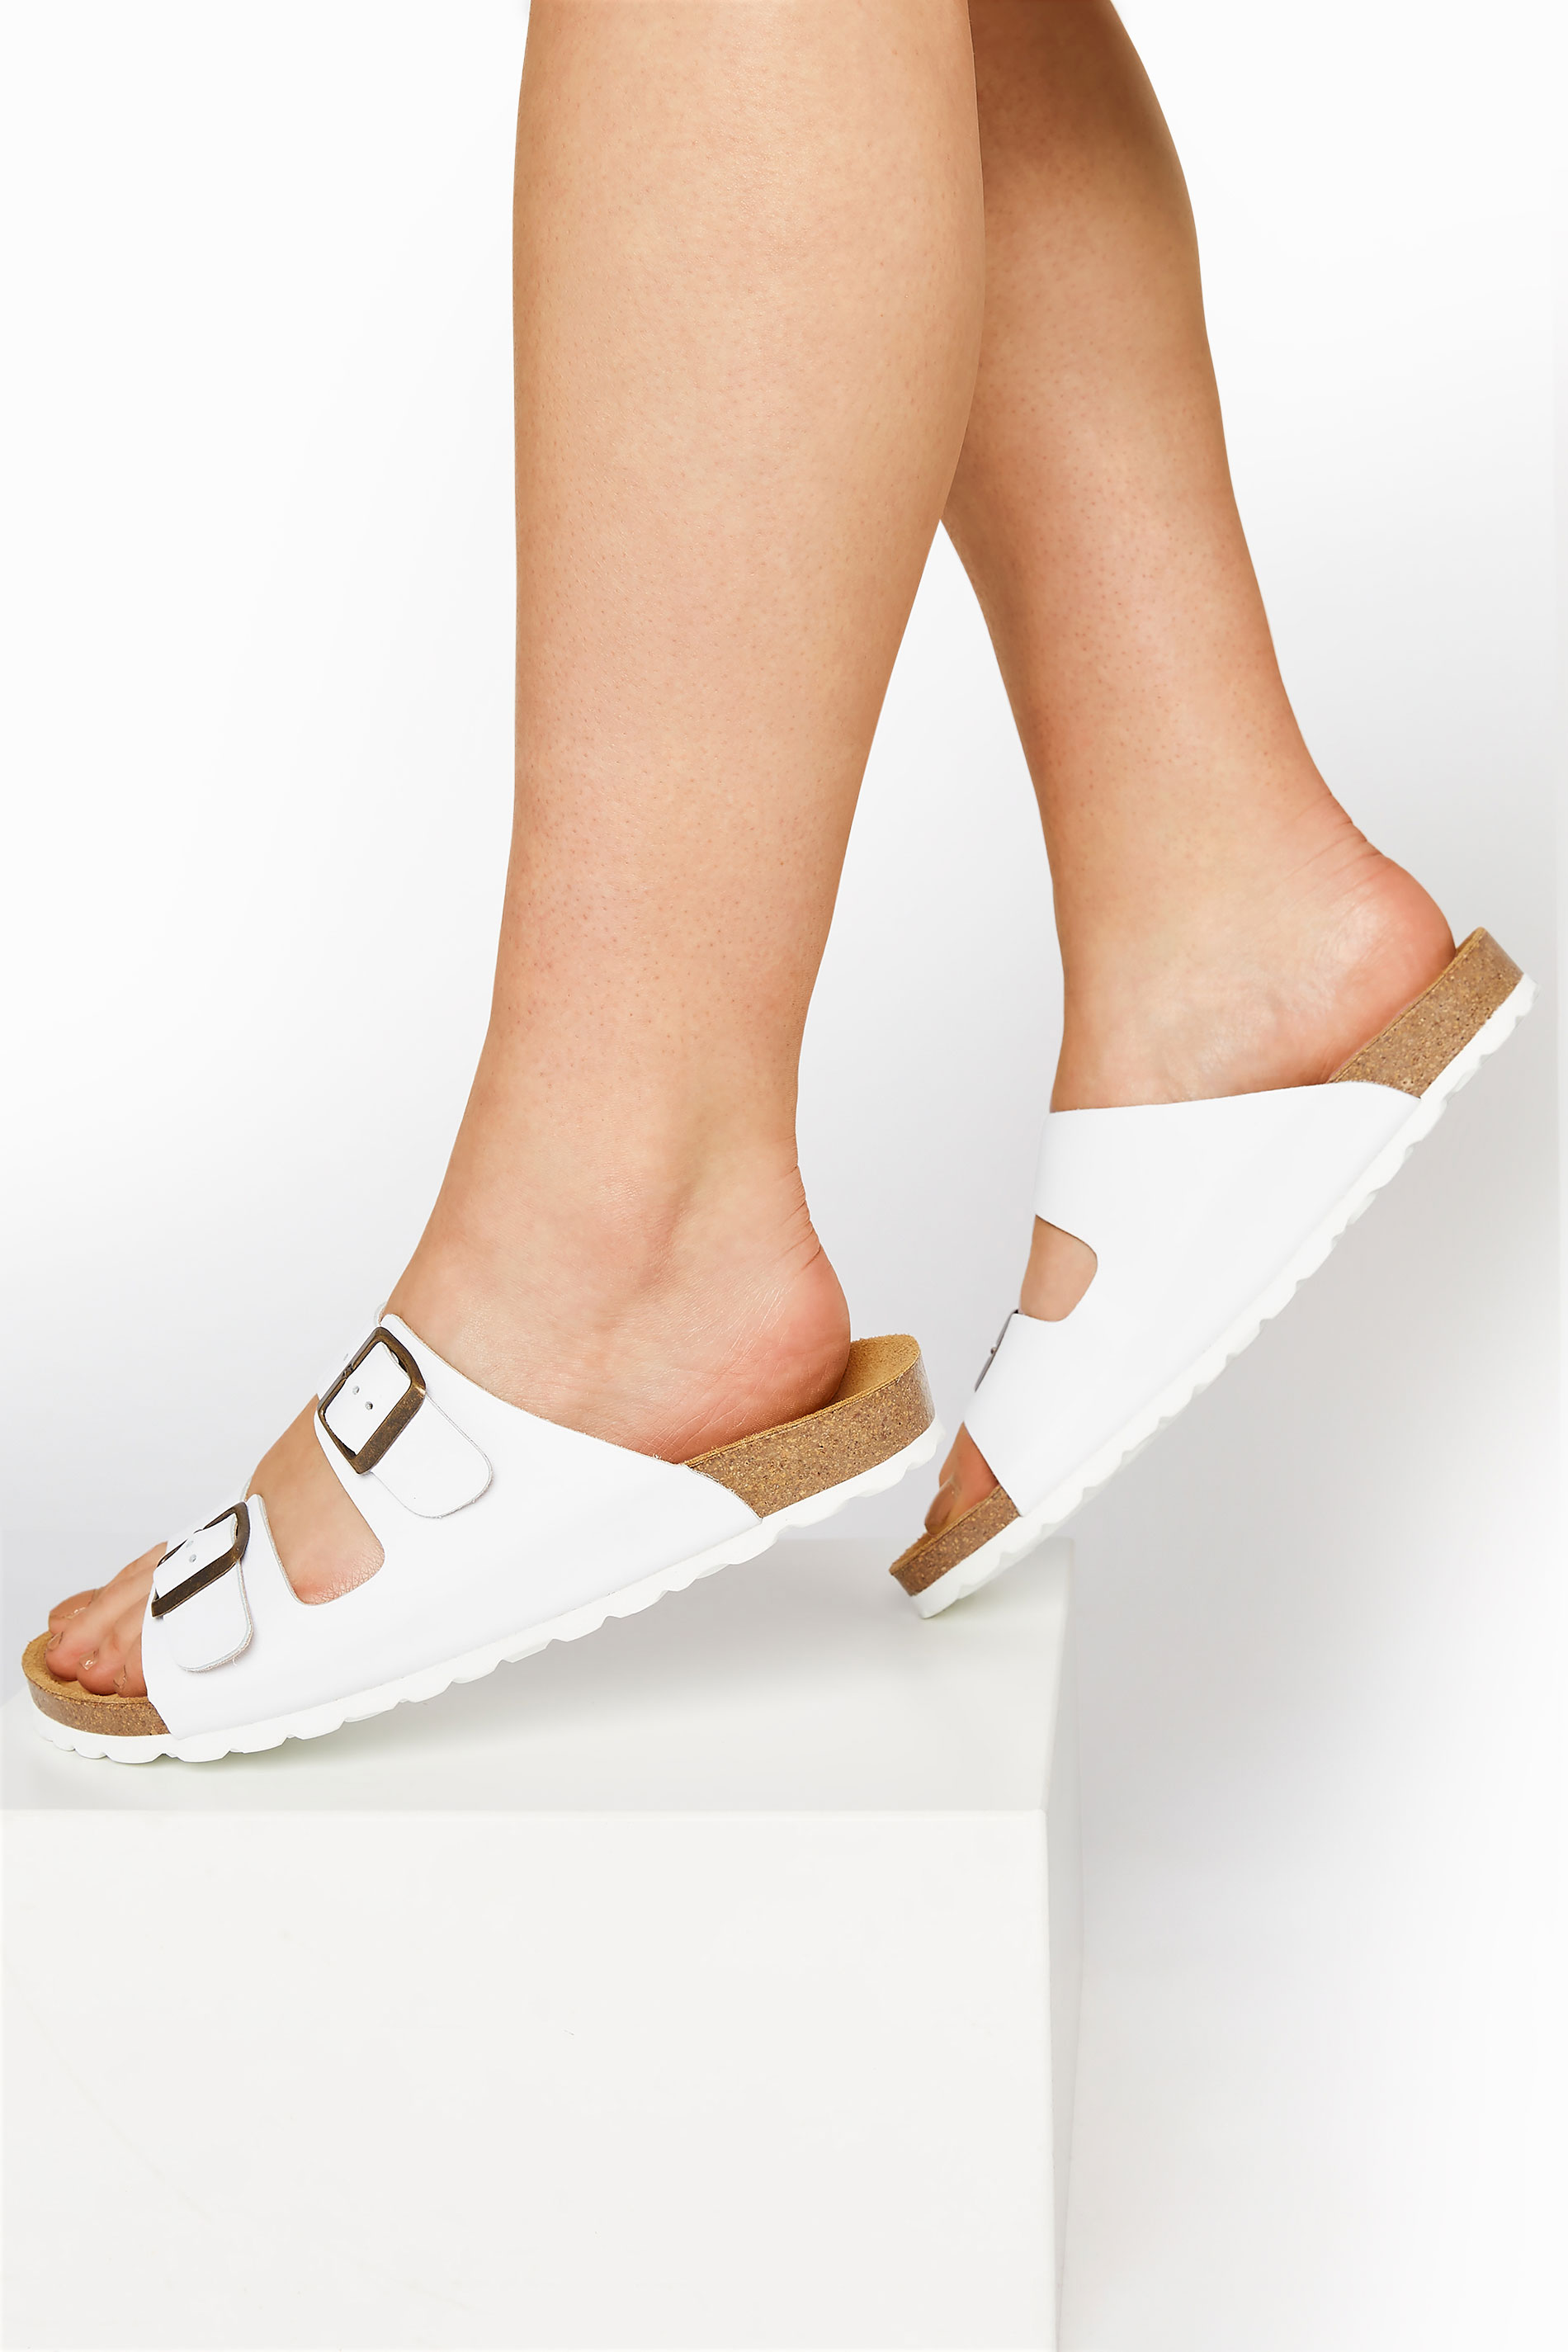 White Leather Two Buckle Footbed Sandals_M.jpg